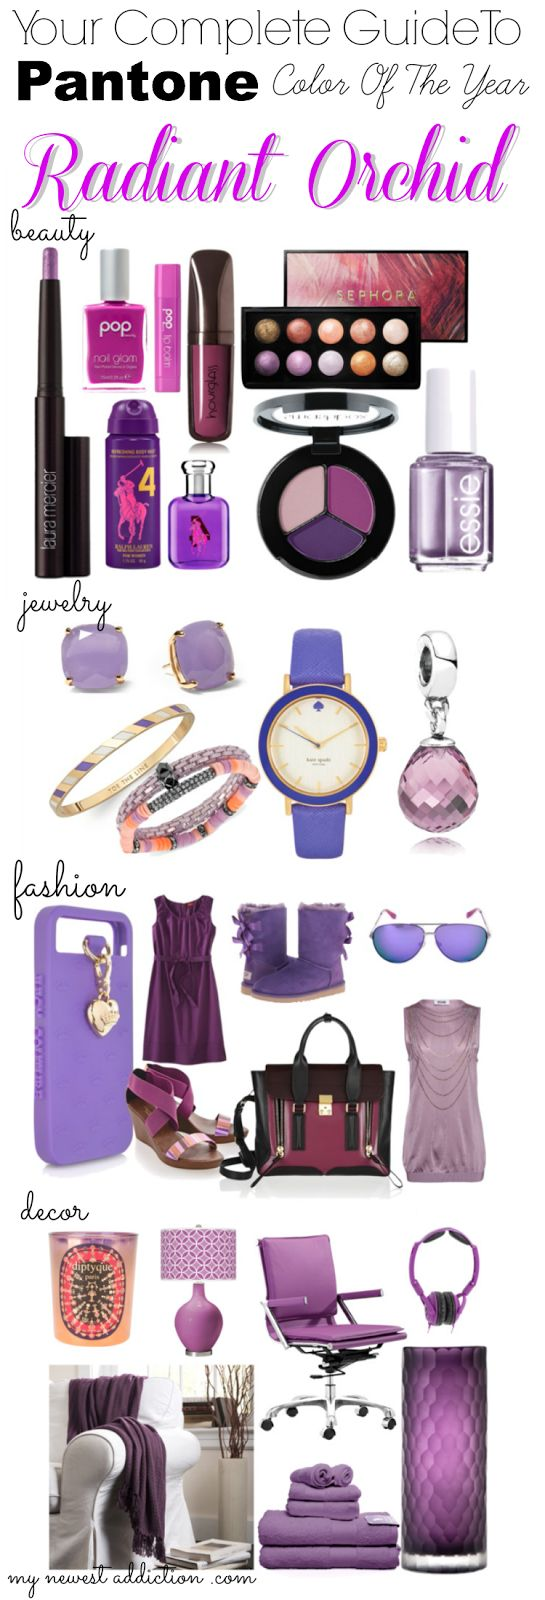 2014. Radiant Orchid: The Complete Guide via @Laura Jayson Jayson Jayson Jayson Jayson Gallaway #coloroftheyear #radiantorchid #pantone | thank goodness, I actually like this color